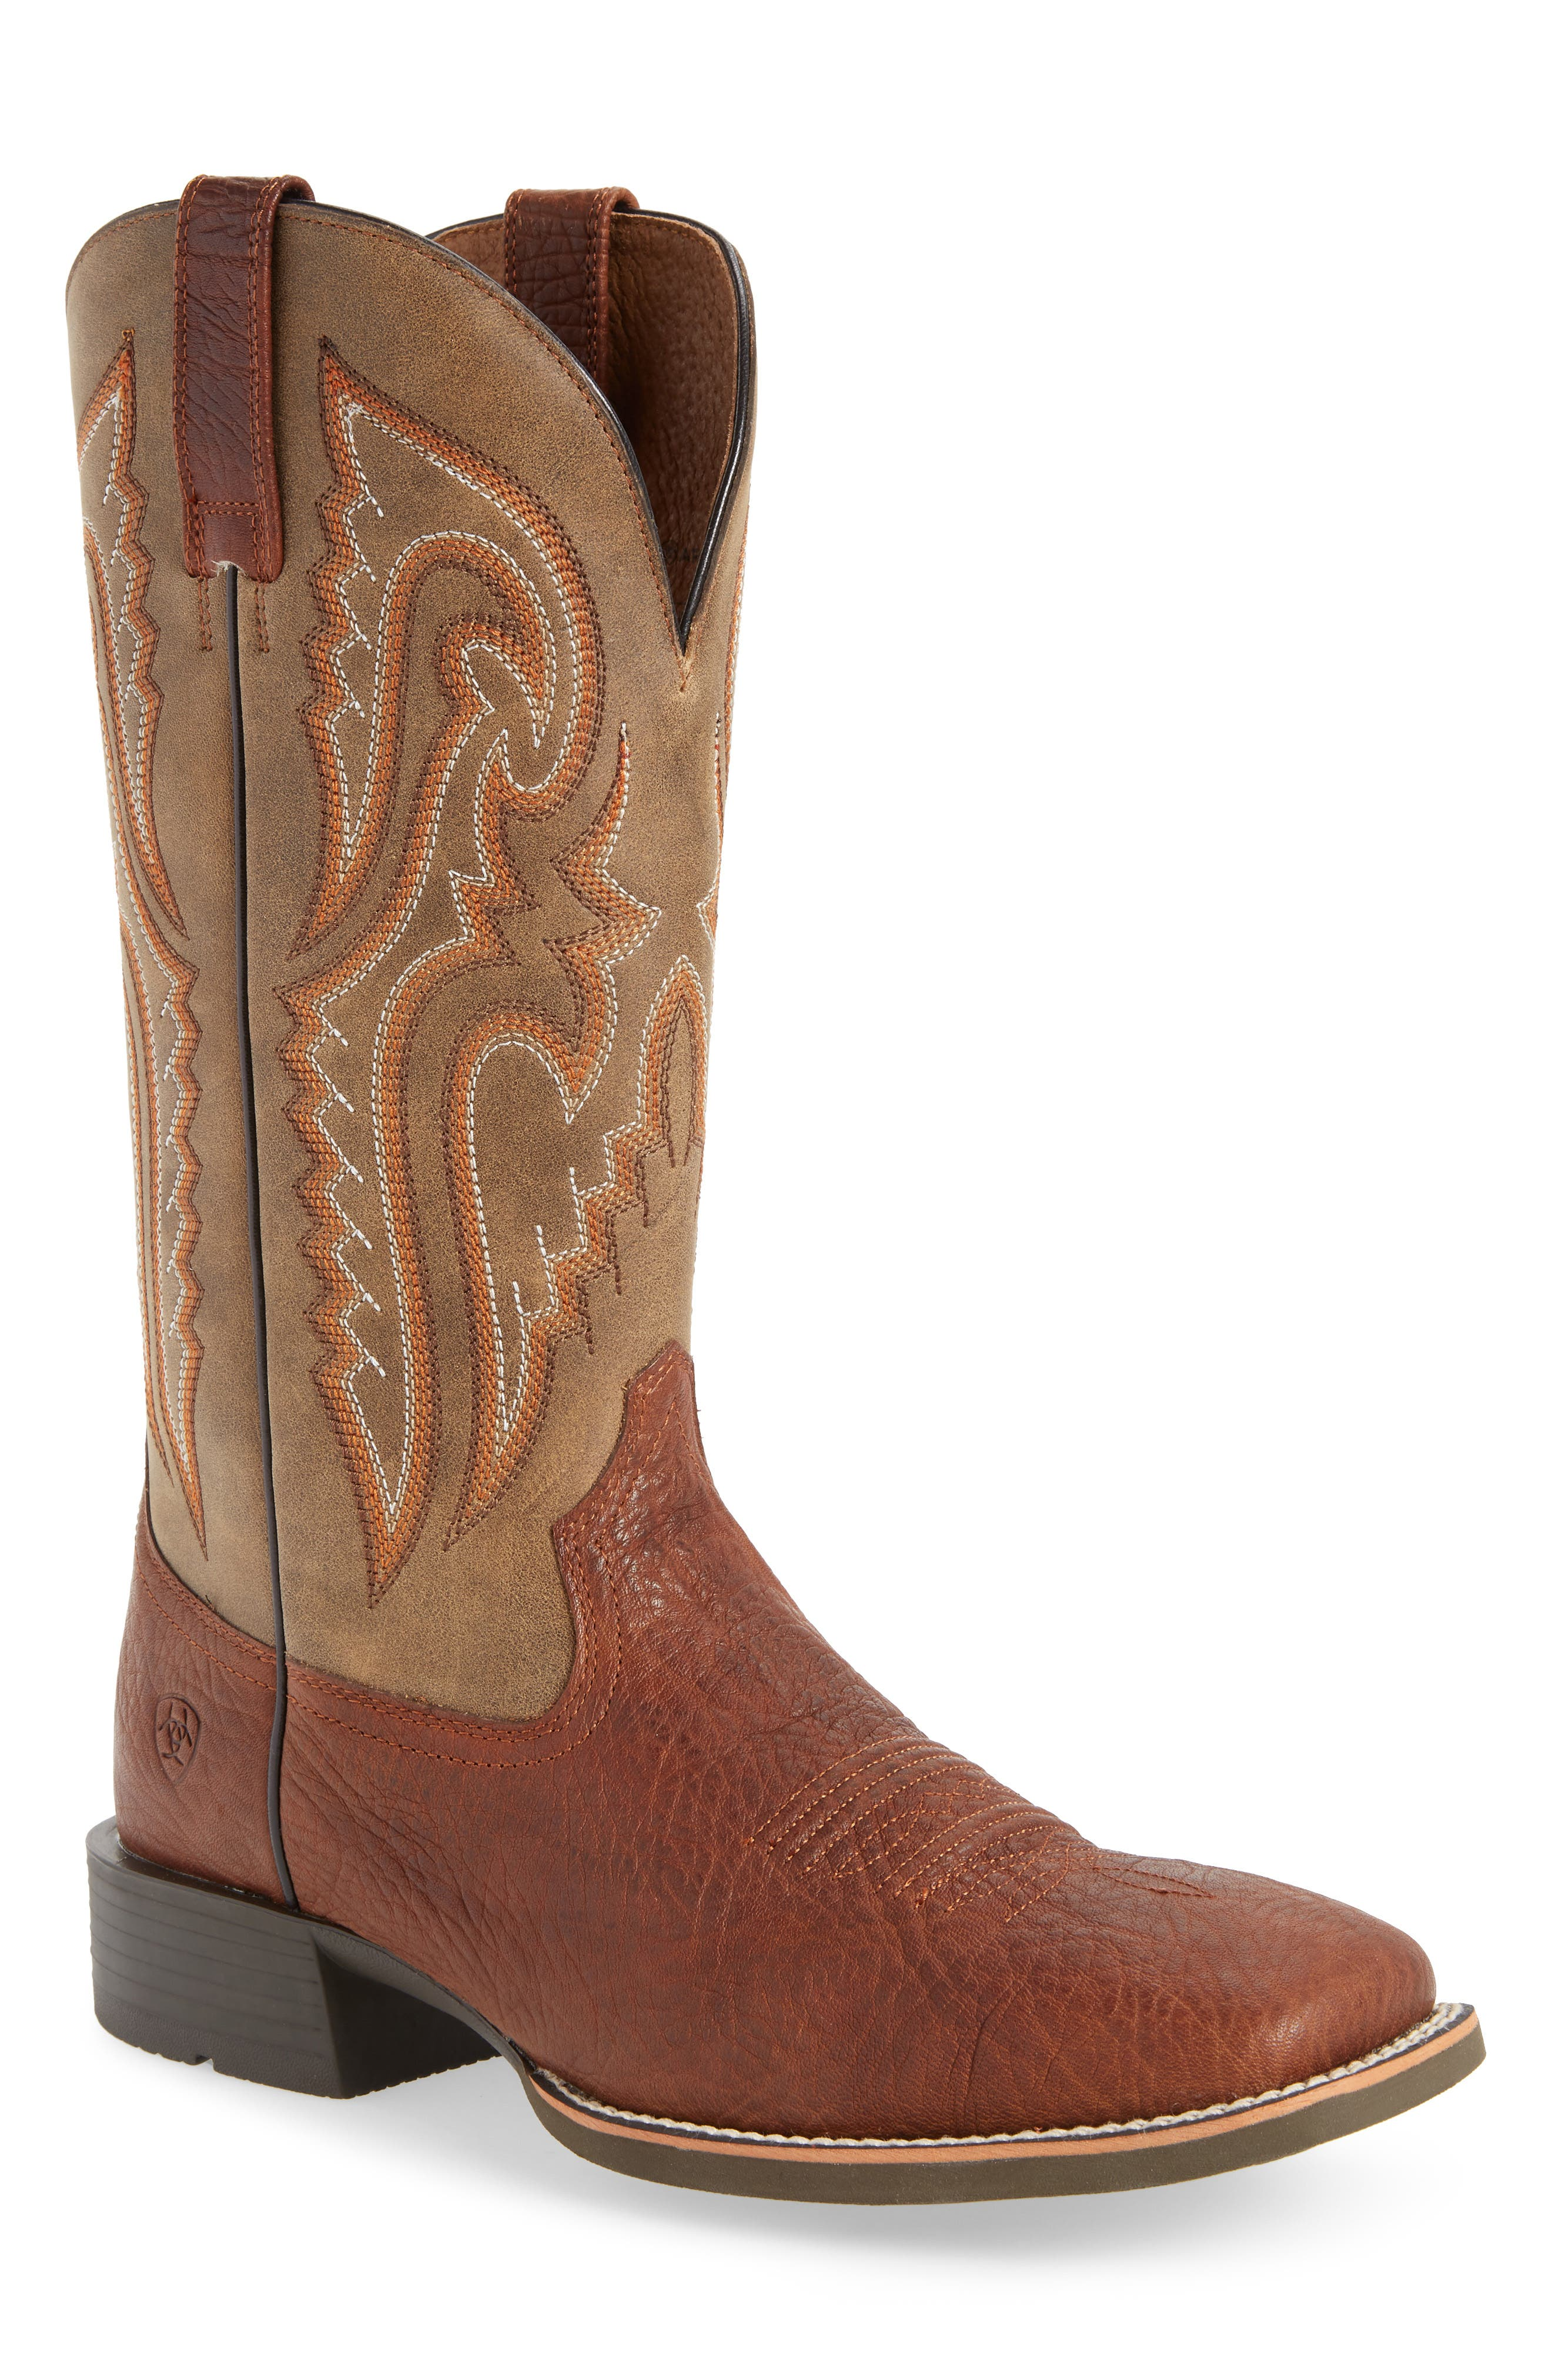 Ariat Heritage Latigo Square Toe Cowboy Boot, Brown